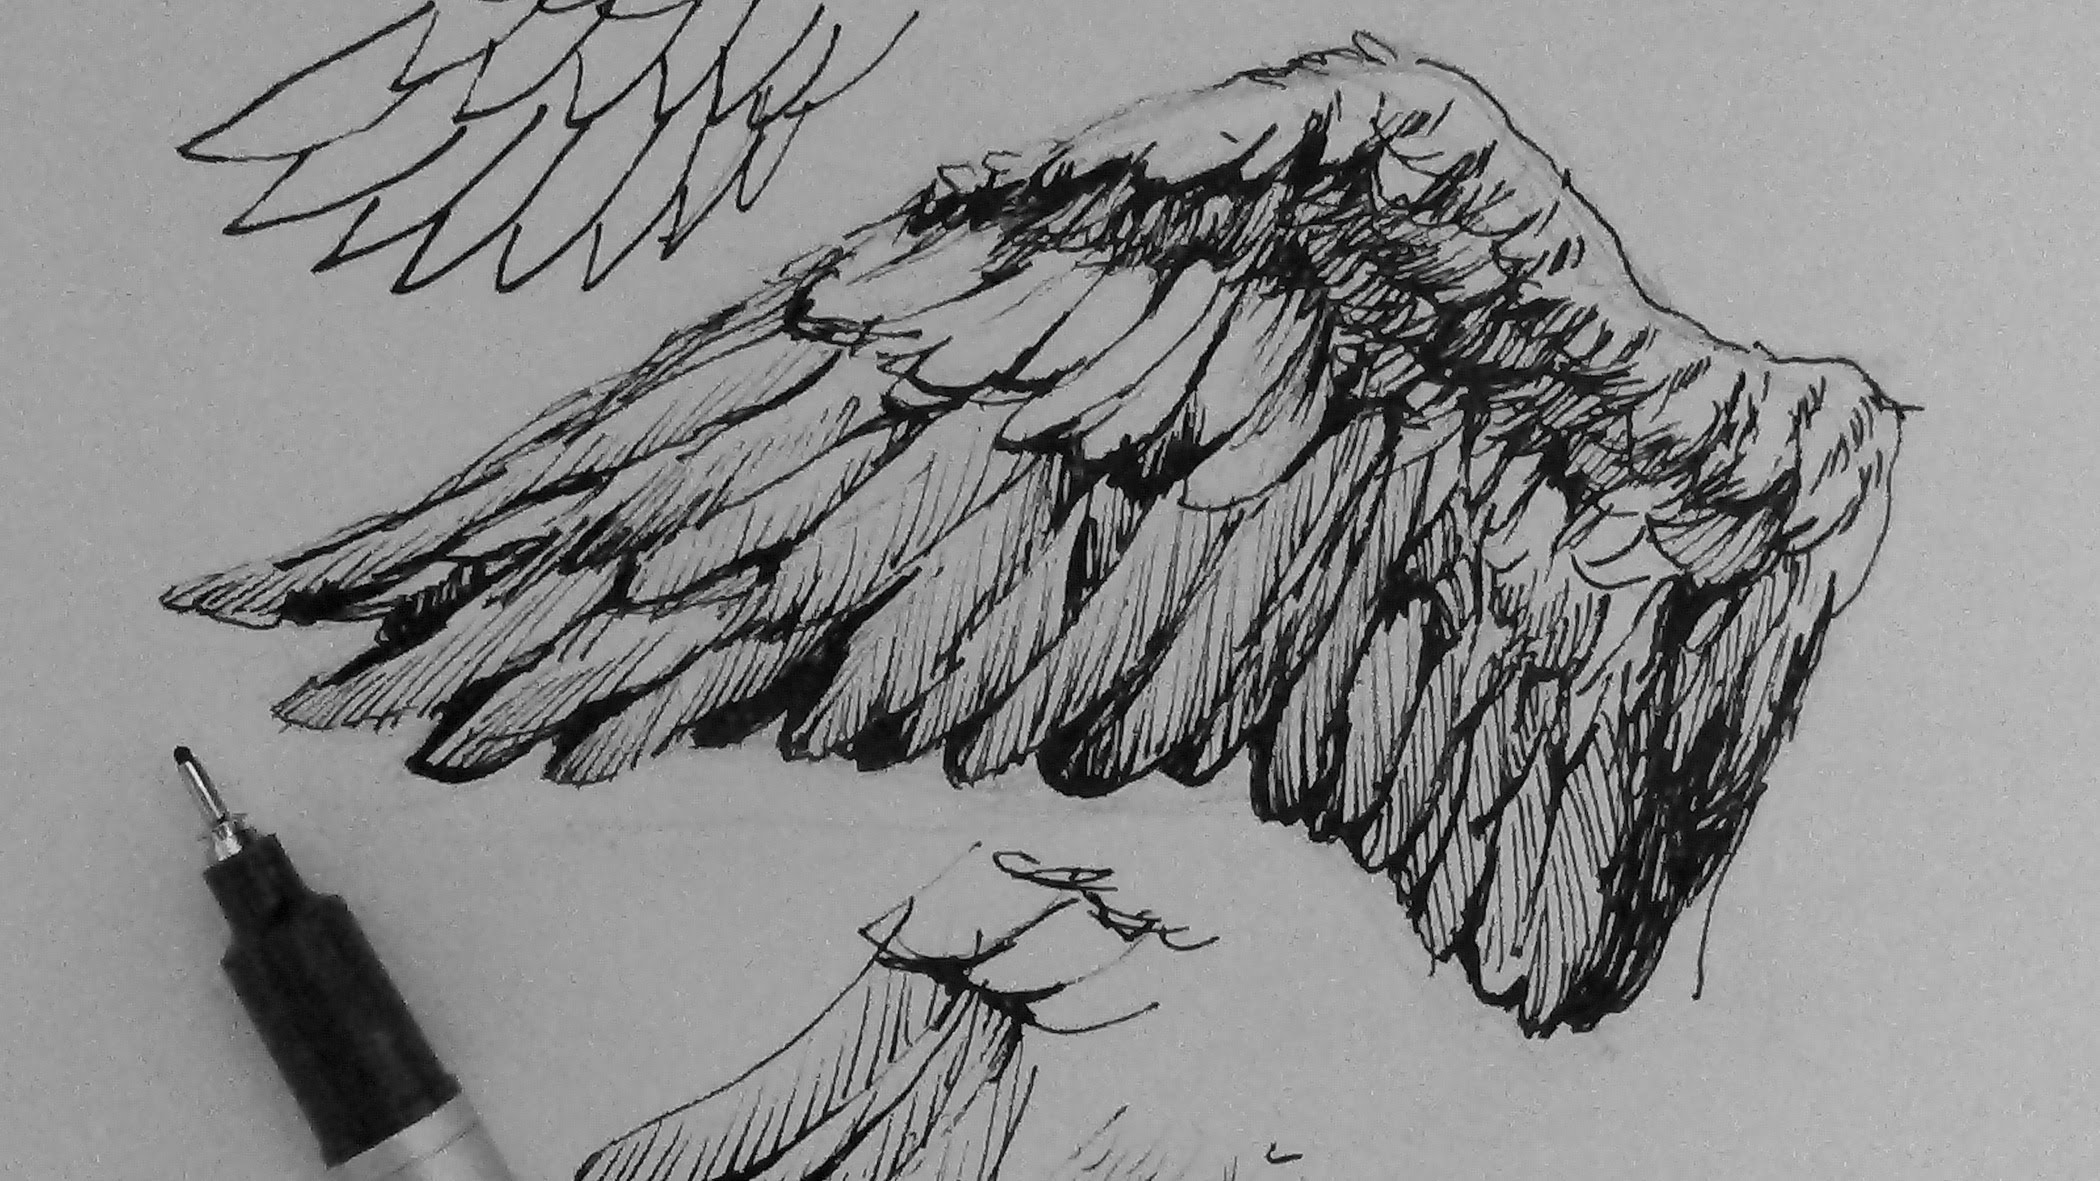 Drawn wings Ink Pen draw Tutorials YouTube